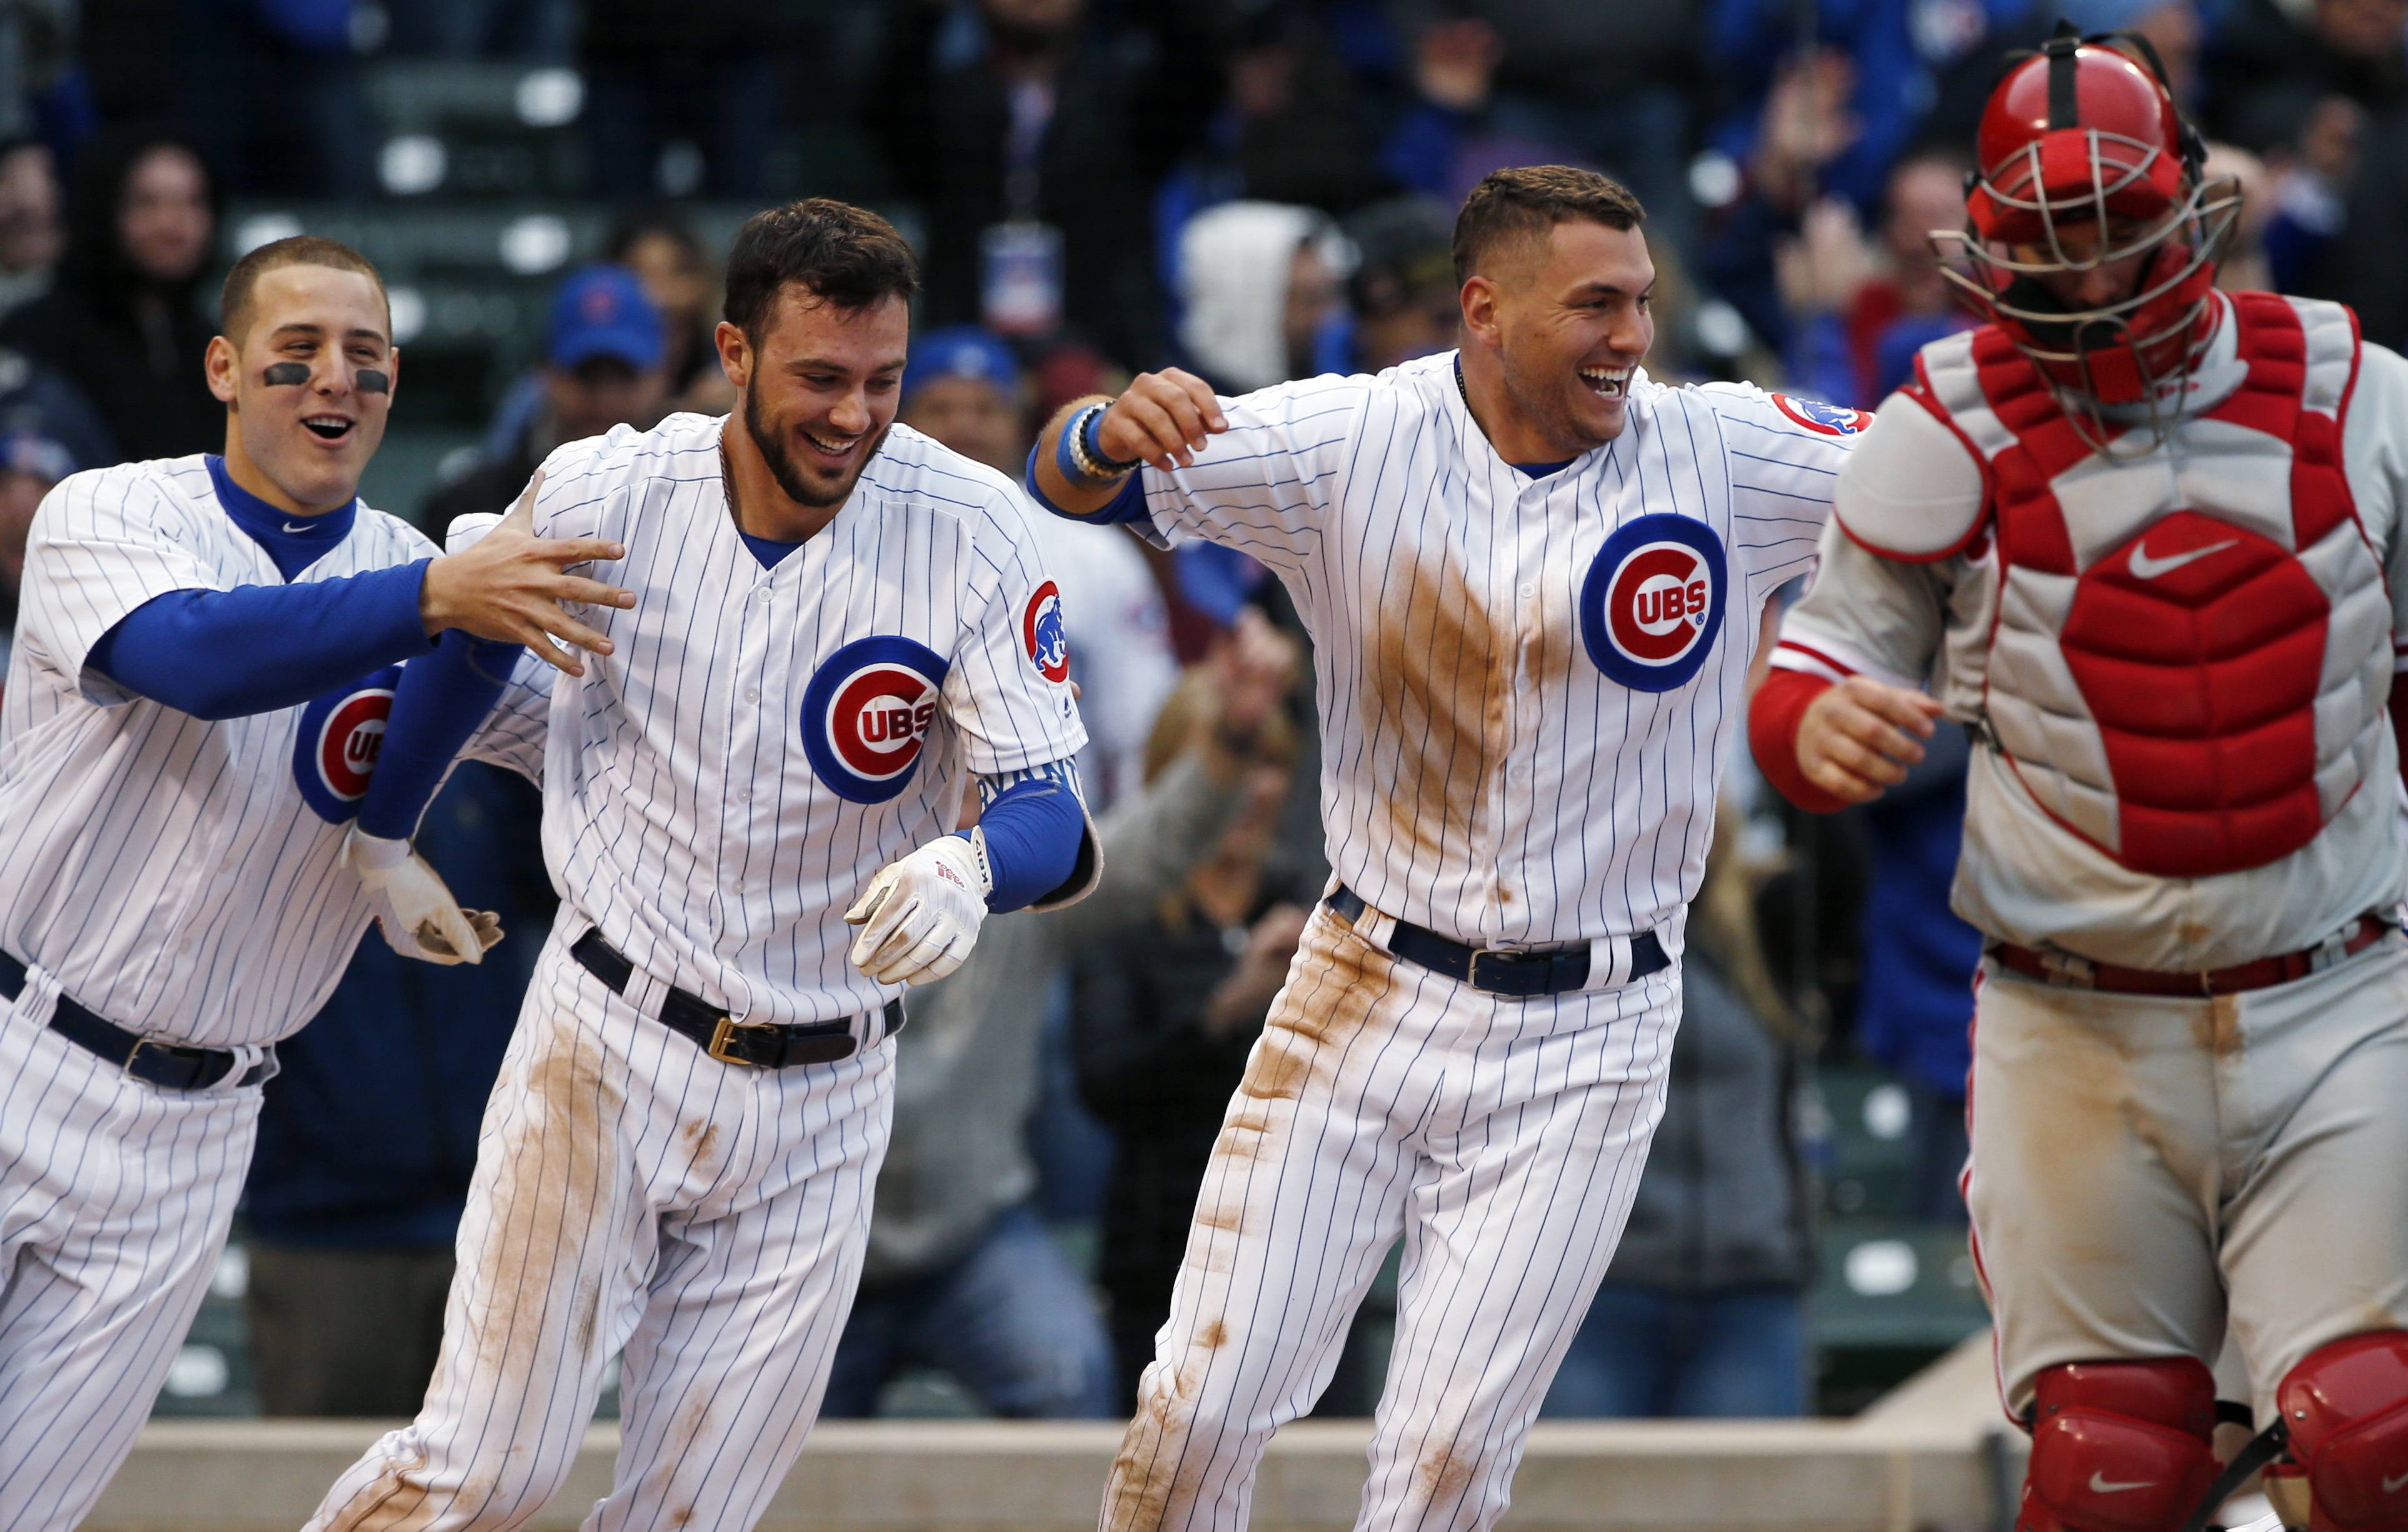 Anthony Rizzo, left, Kris Bryant, center, and Albert Almora Jr., celebrate after the Cubs defeated the Philadelphia Phillies. Almora Jr. was in the middle of more baserunning plays again Thursday. He doubled to lead off the bottom of the 13th inning and scored the winning run on a throwing error and the Cubs won 5-4.